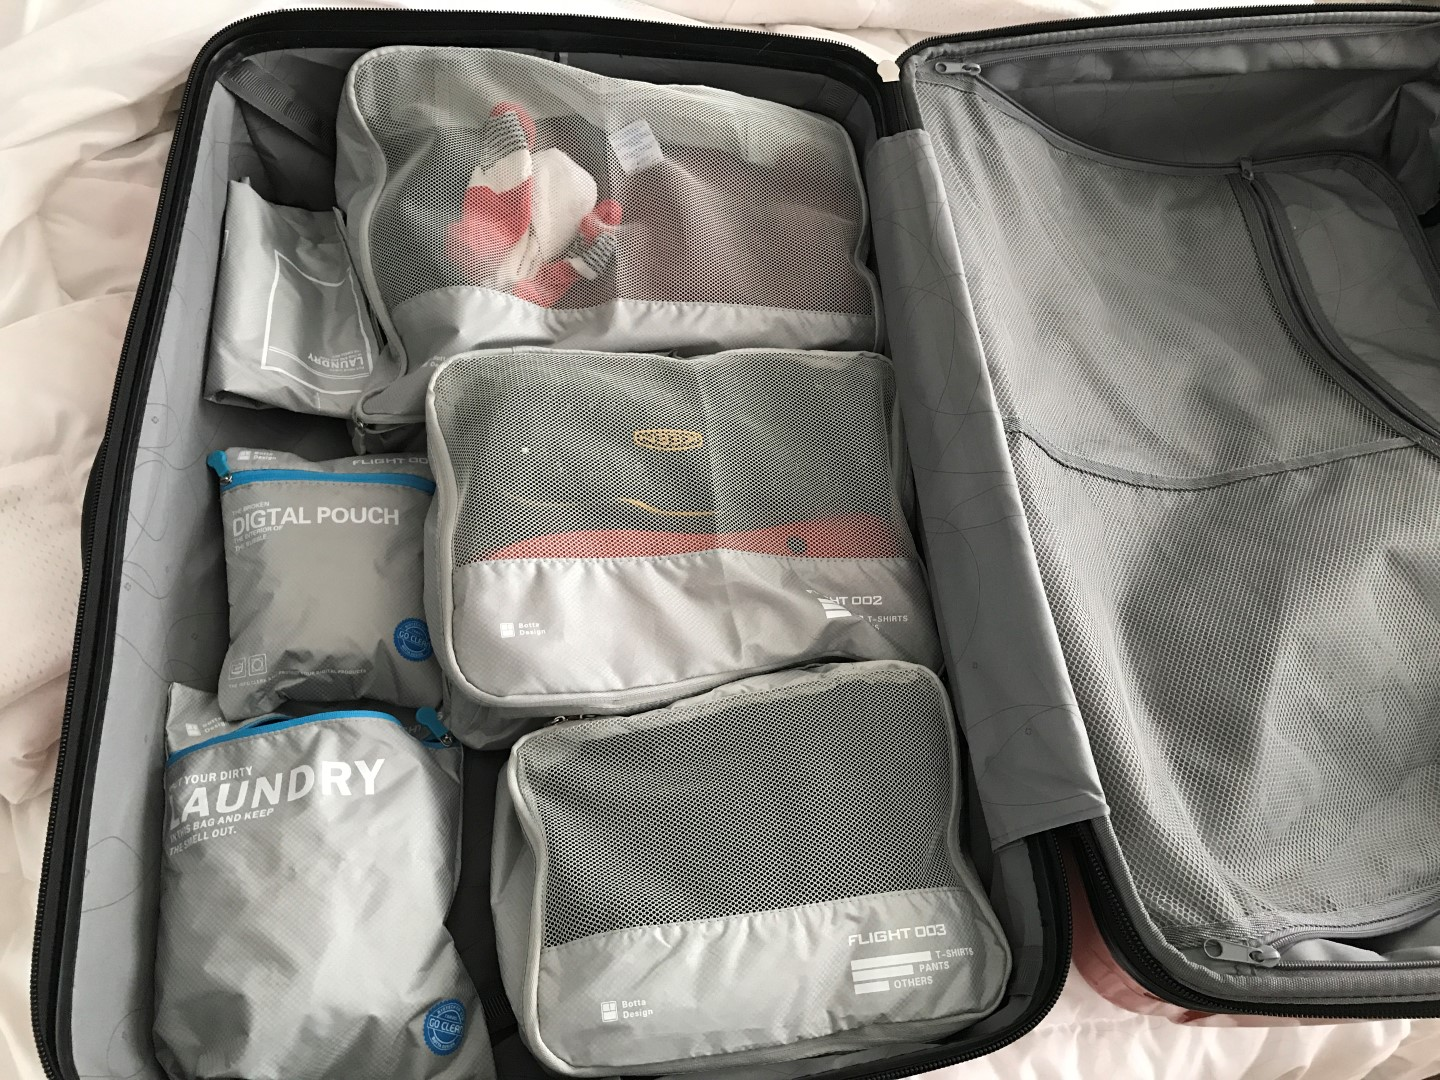 Luggage Packing Travel Cubes Laundry Bag